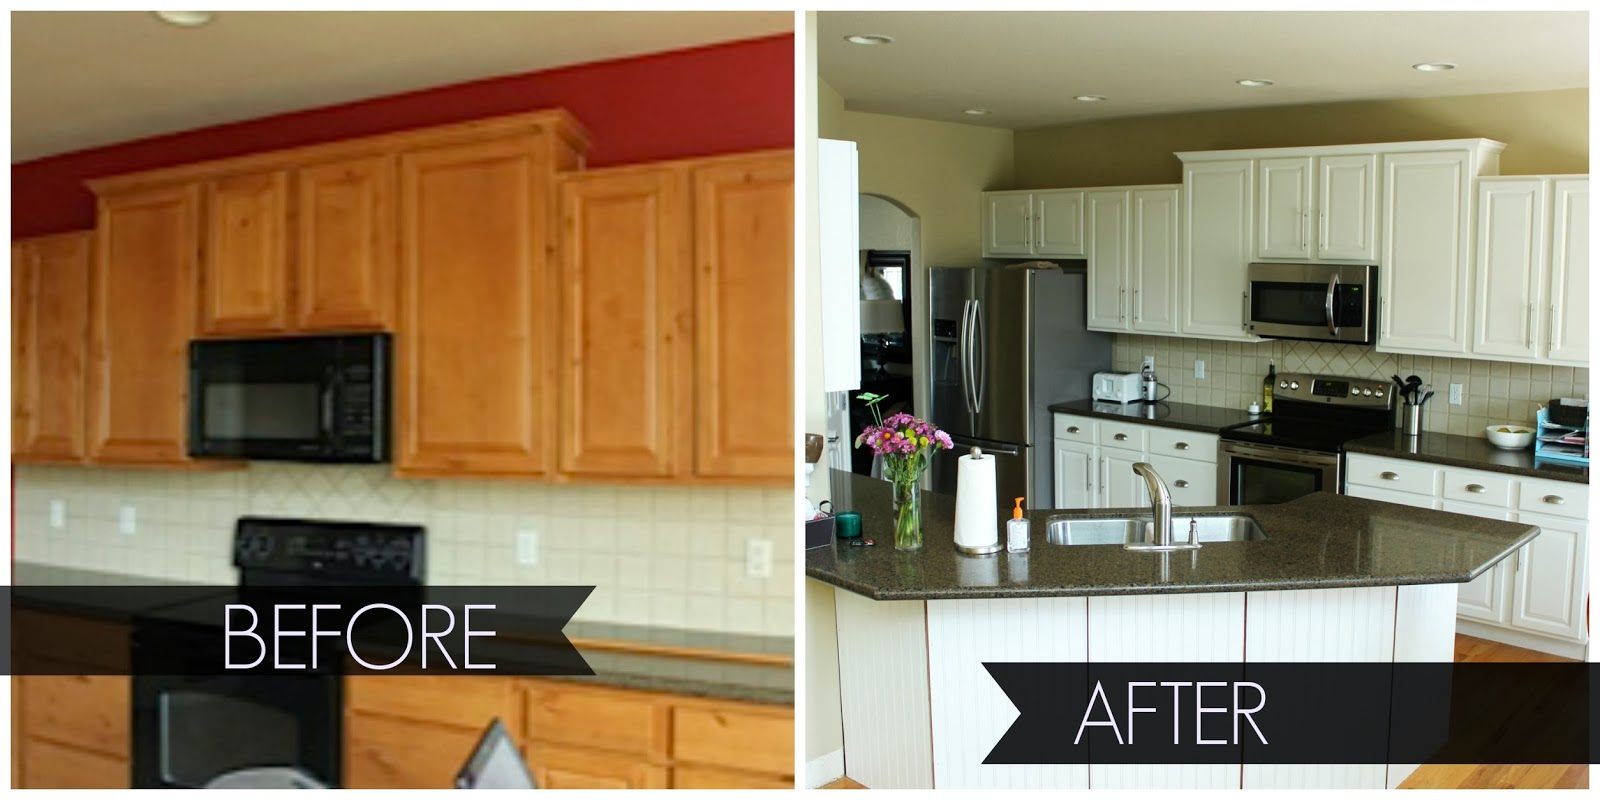 2nd story sewing painting kitchen cabinets a how to guide. Black Bedroom Furniture Sets. Home Design Ideas